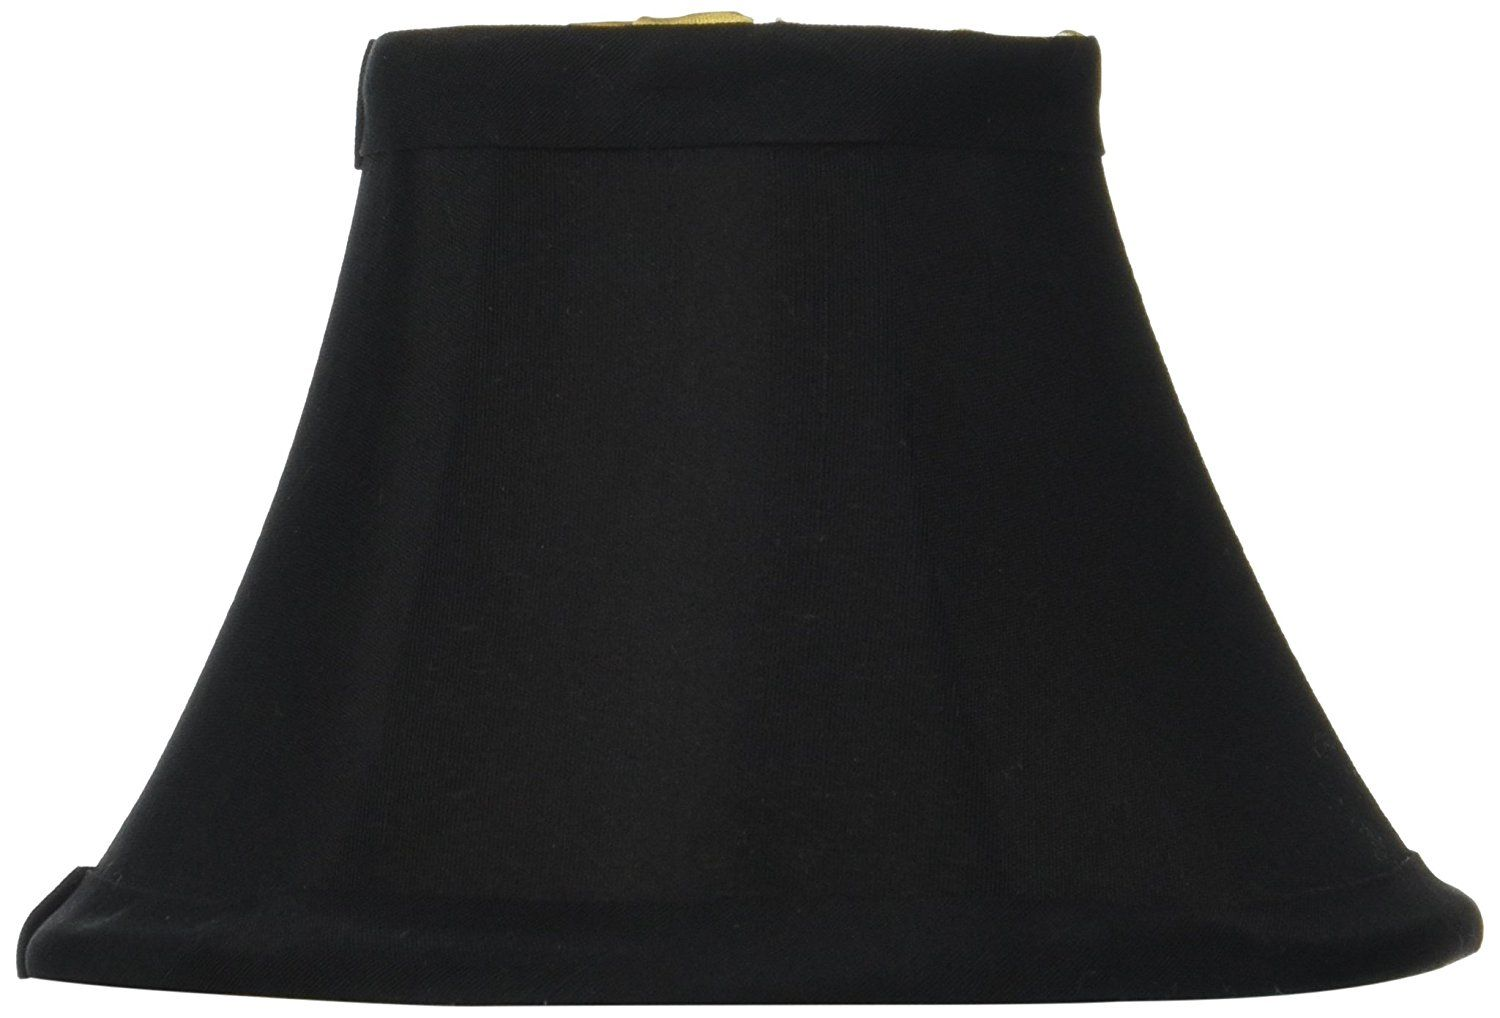 Urbanest 1100462b set of 5 chandelier mini lamp shade 5 inch bell urbanest 1100462b set of 5 chandelier mini lamp shade 5 inch bell clip arubaitofo Image collections